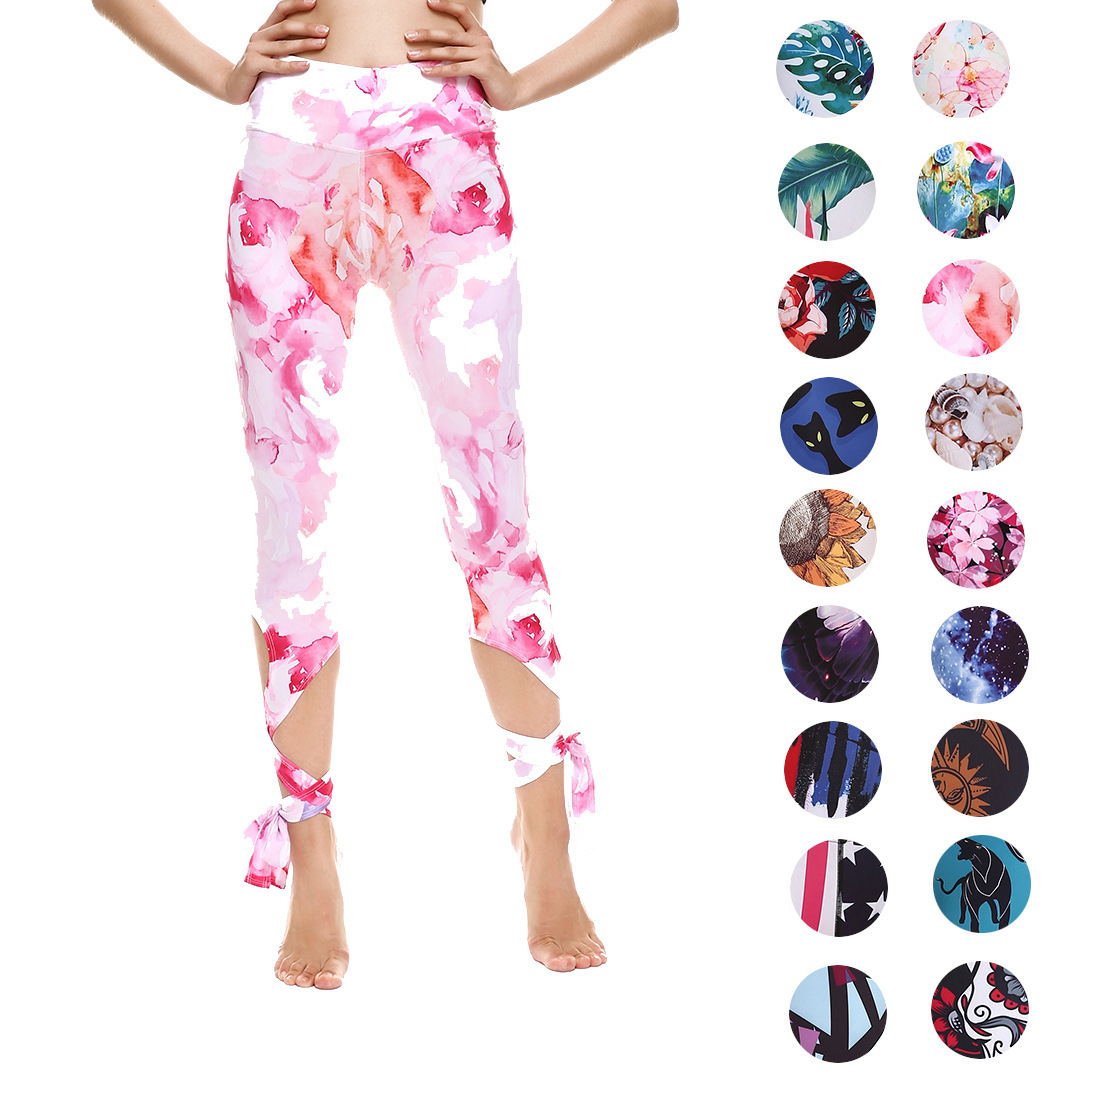 Ladies Fashion Slim Breathable Sweat Absorbing Running Sports Leggings Printing Multicolor Yo-ga Pants Hot Sports Bandage Pants